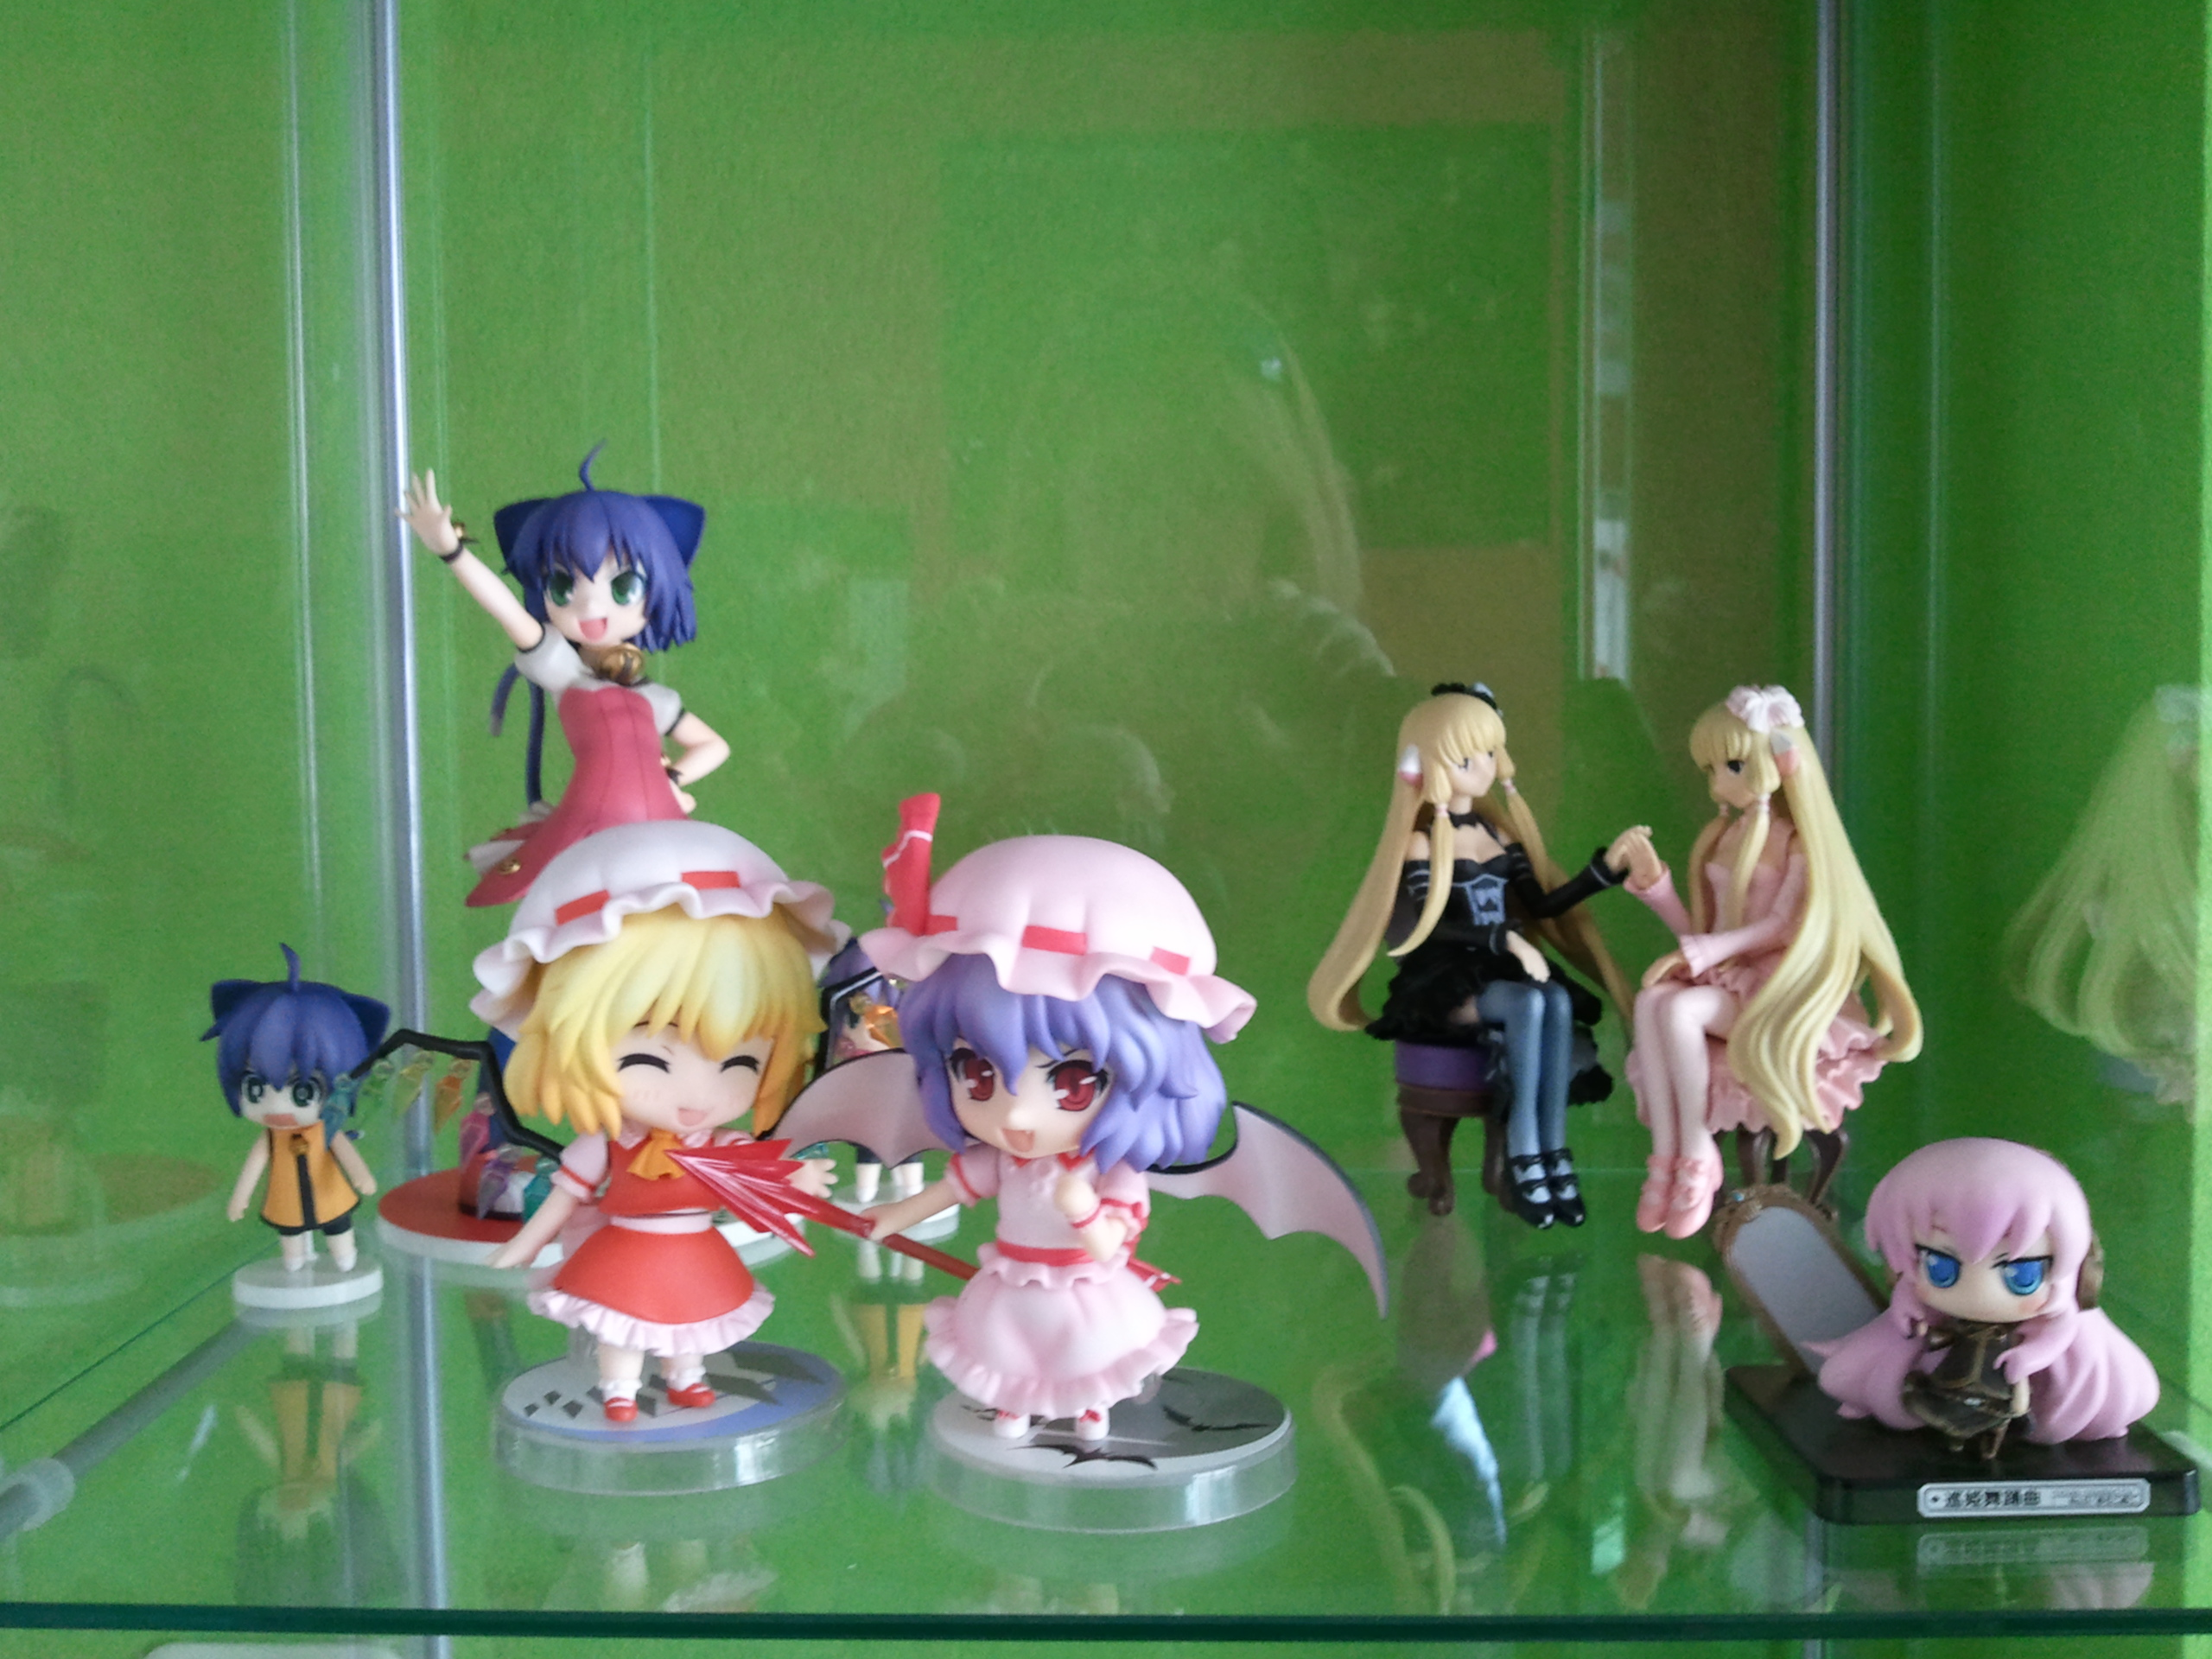 exclusive vocaloid nendoroid_petit sega chii touhou_project nendoroid chobits megurine_luka freya good_smile_company project scarlet remilia flandre dark_chii 1/8 black_party_dress kyouran_kazoku_nikki midarezaki_kyouka michiko pink_party_dress vignetteum_cute